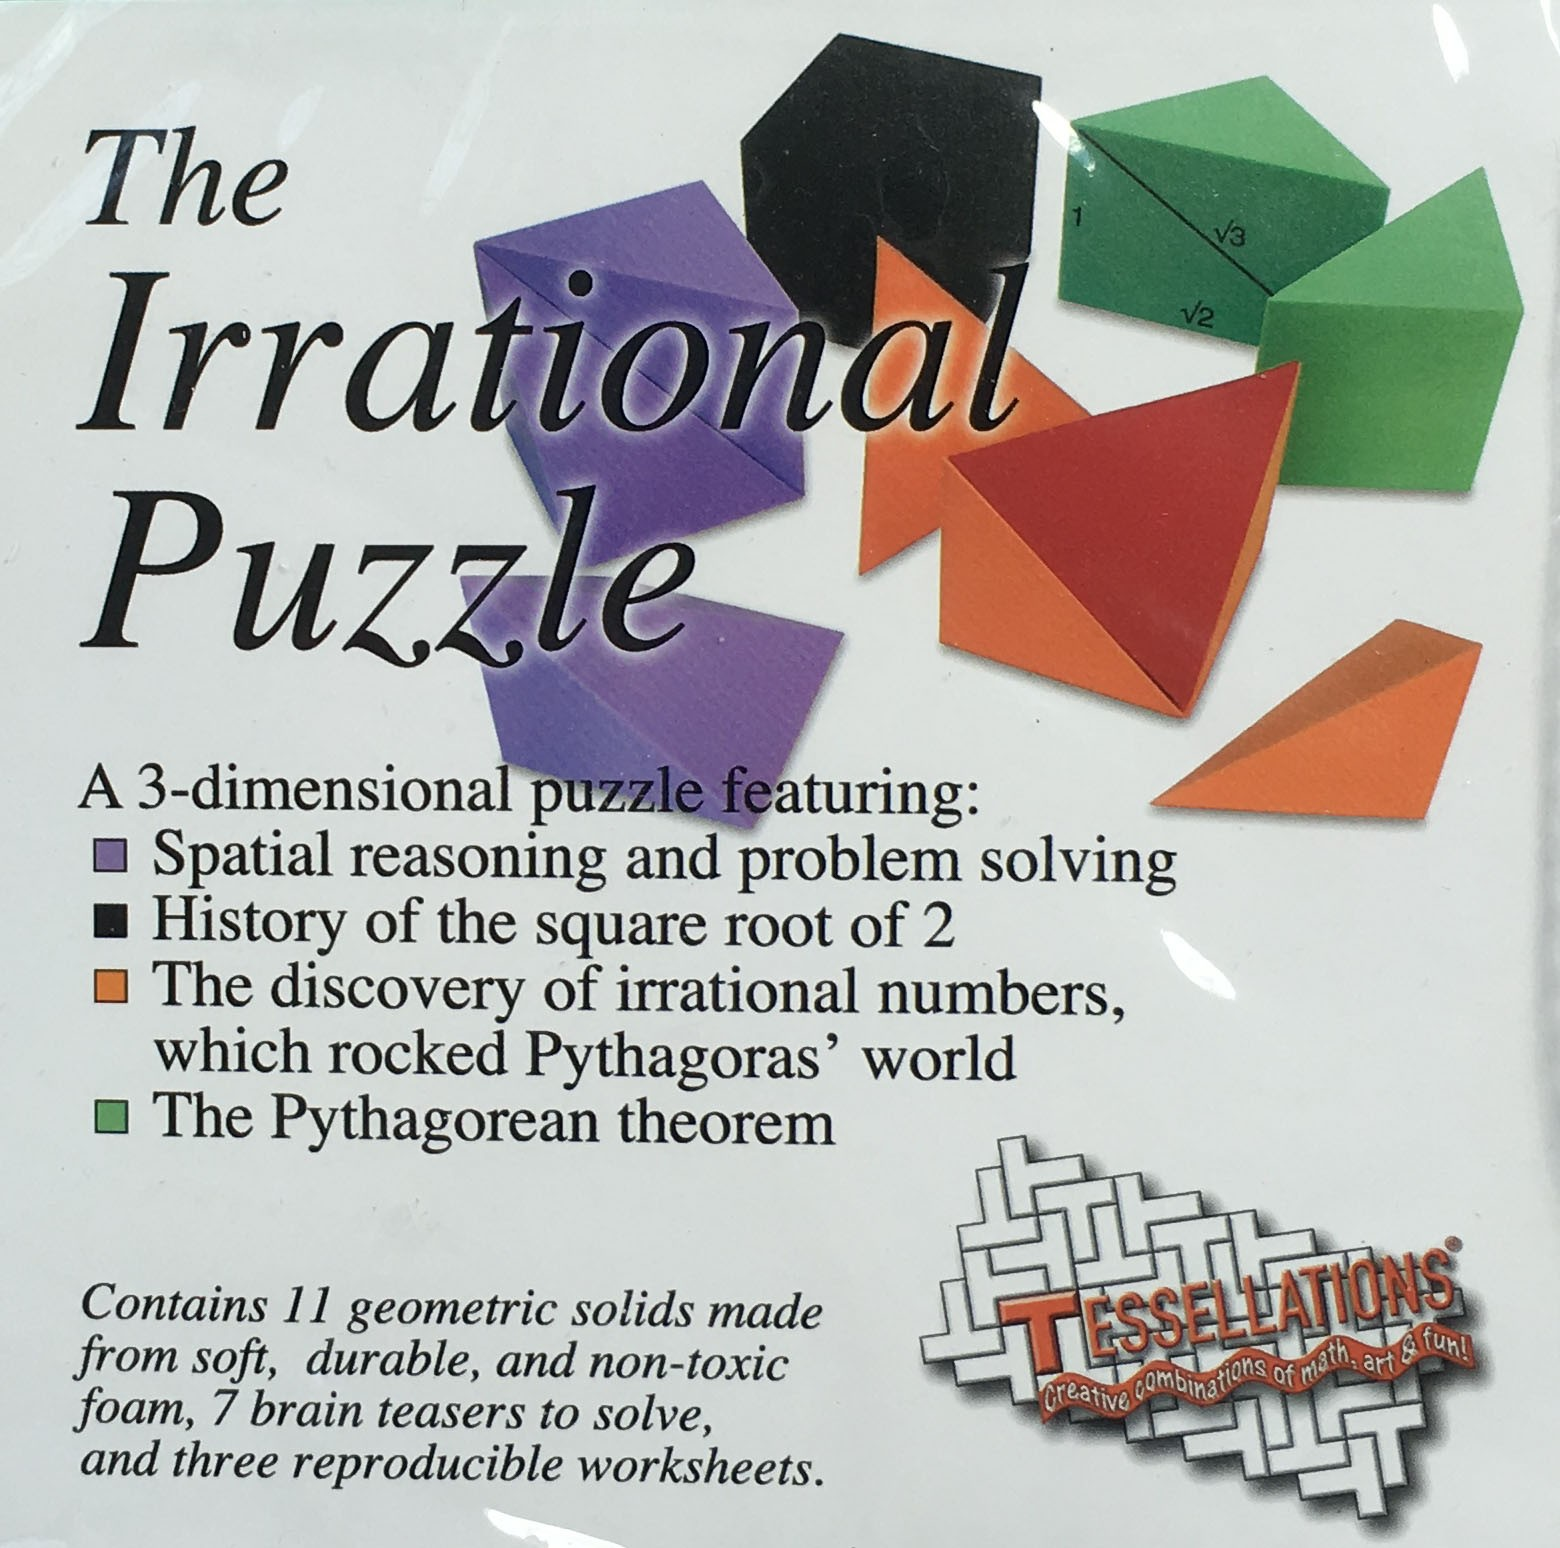 The Irrational Puzzle